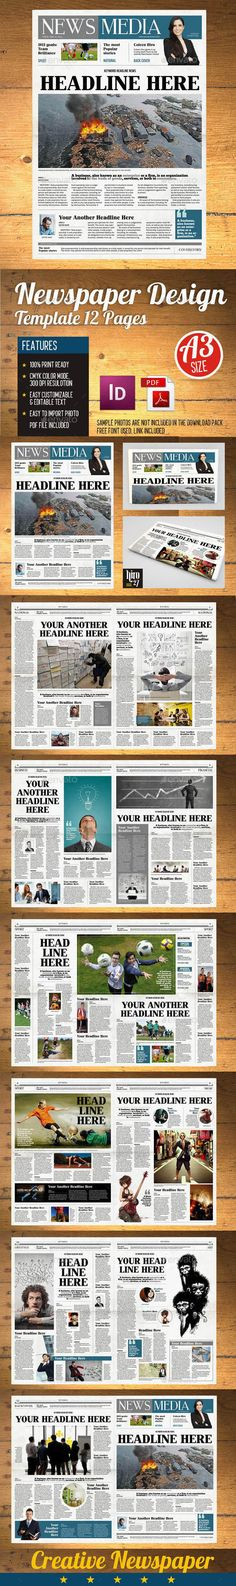 24 Pages Daily Newspaper | Newsletter templates, Newspaper and ...